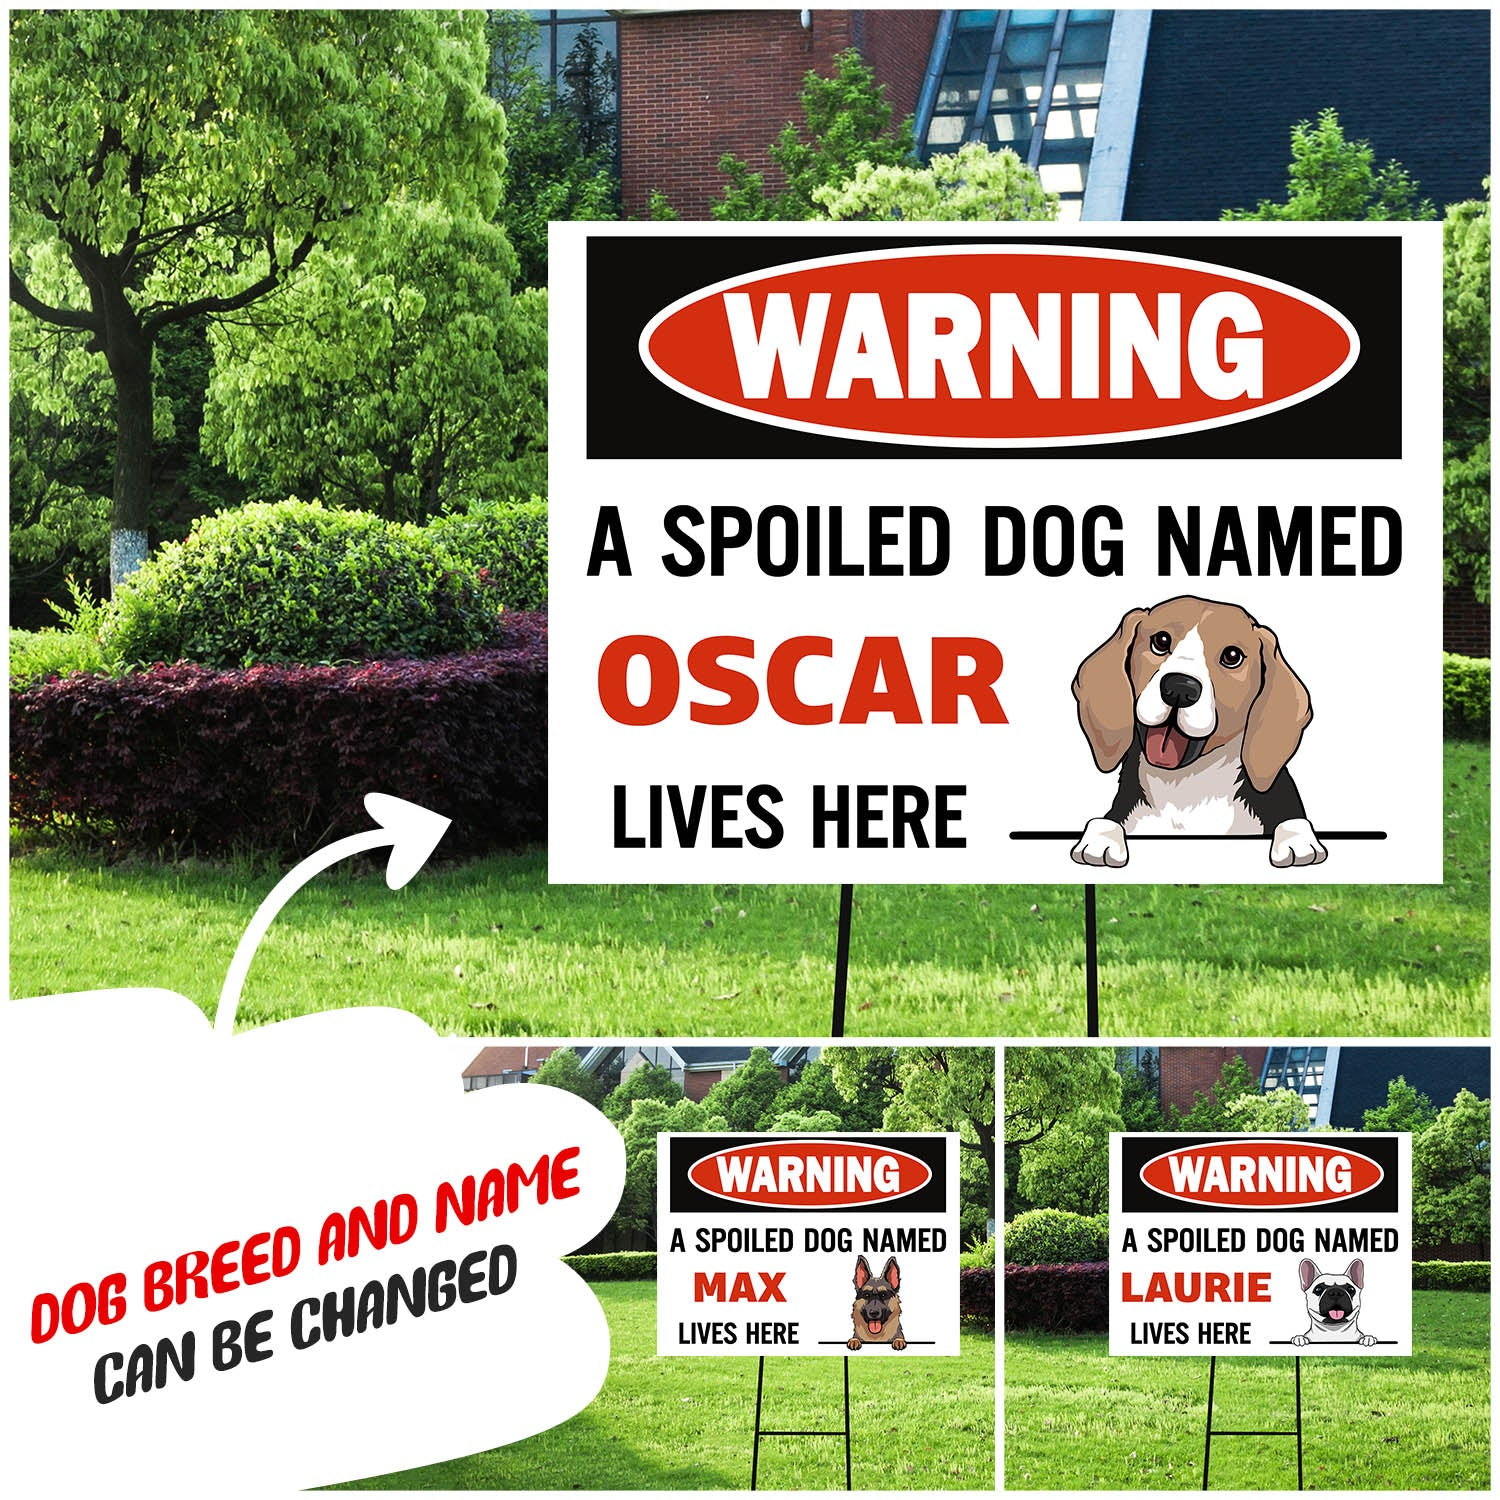 A spoiled dog lives here - Personalized custom yard sign